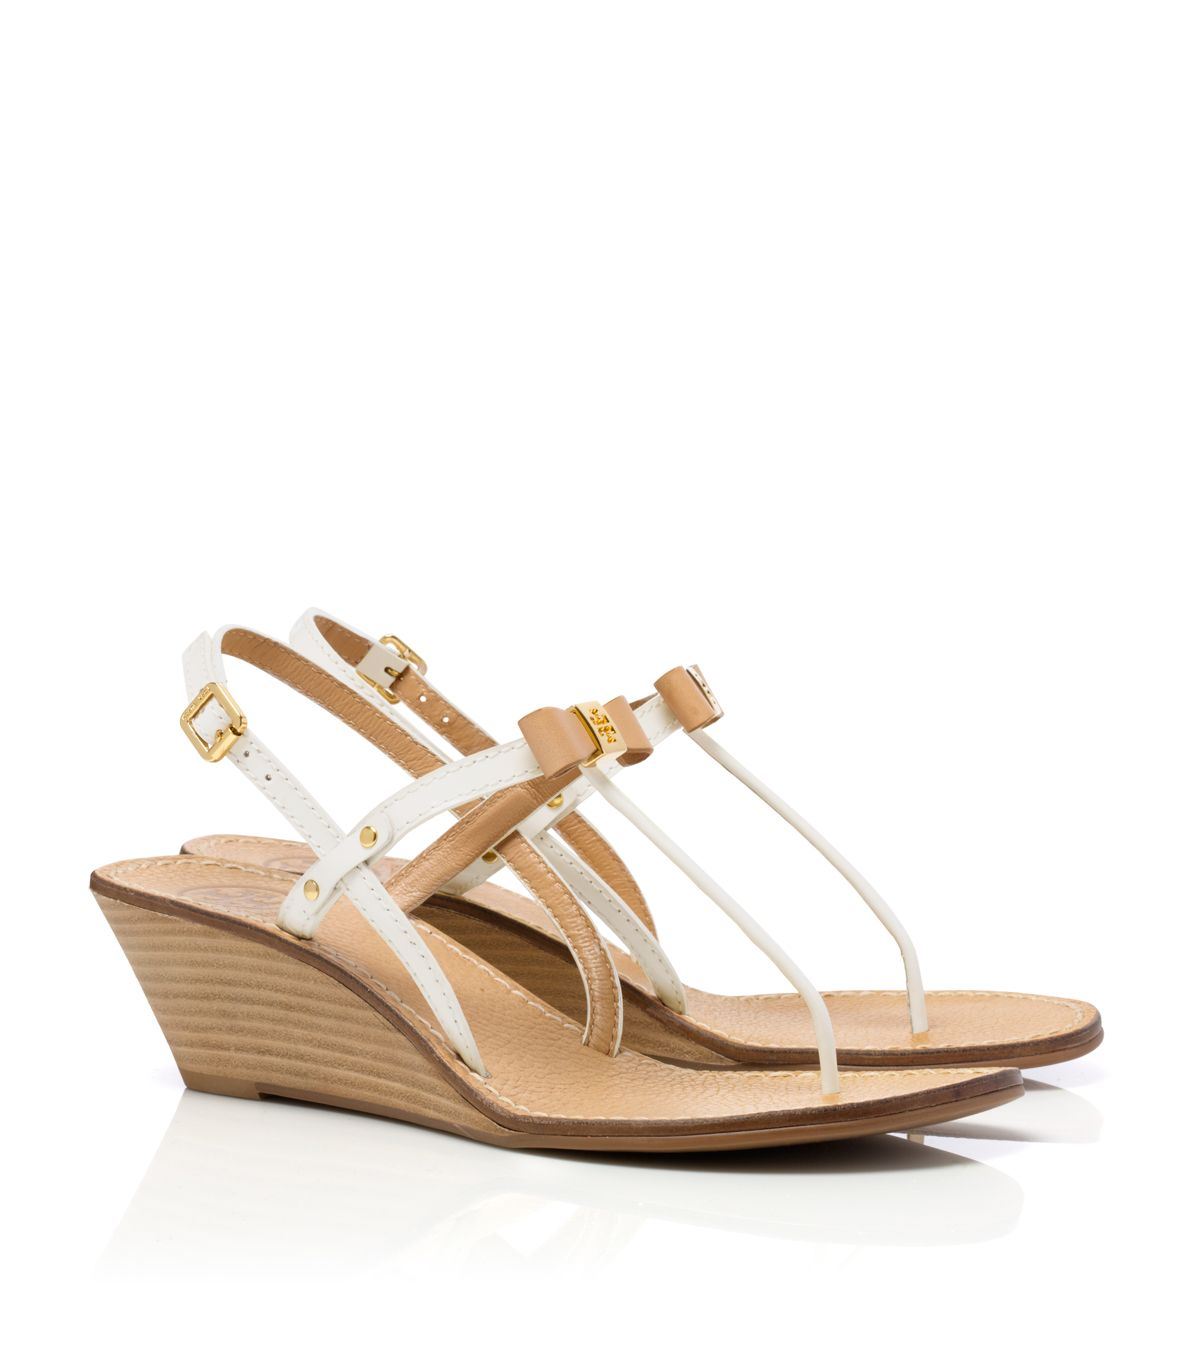 Tory Burch Kailey Wedge Thong Sandal in Bleach/Bright Navy